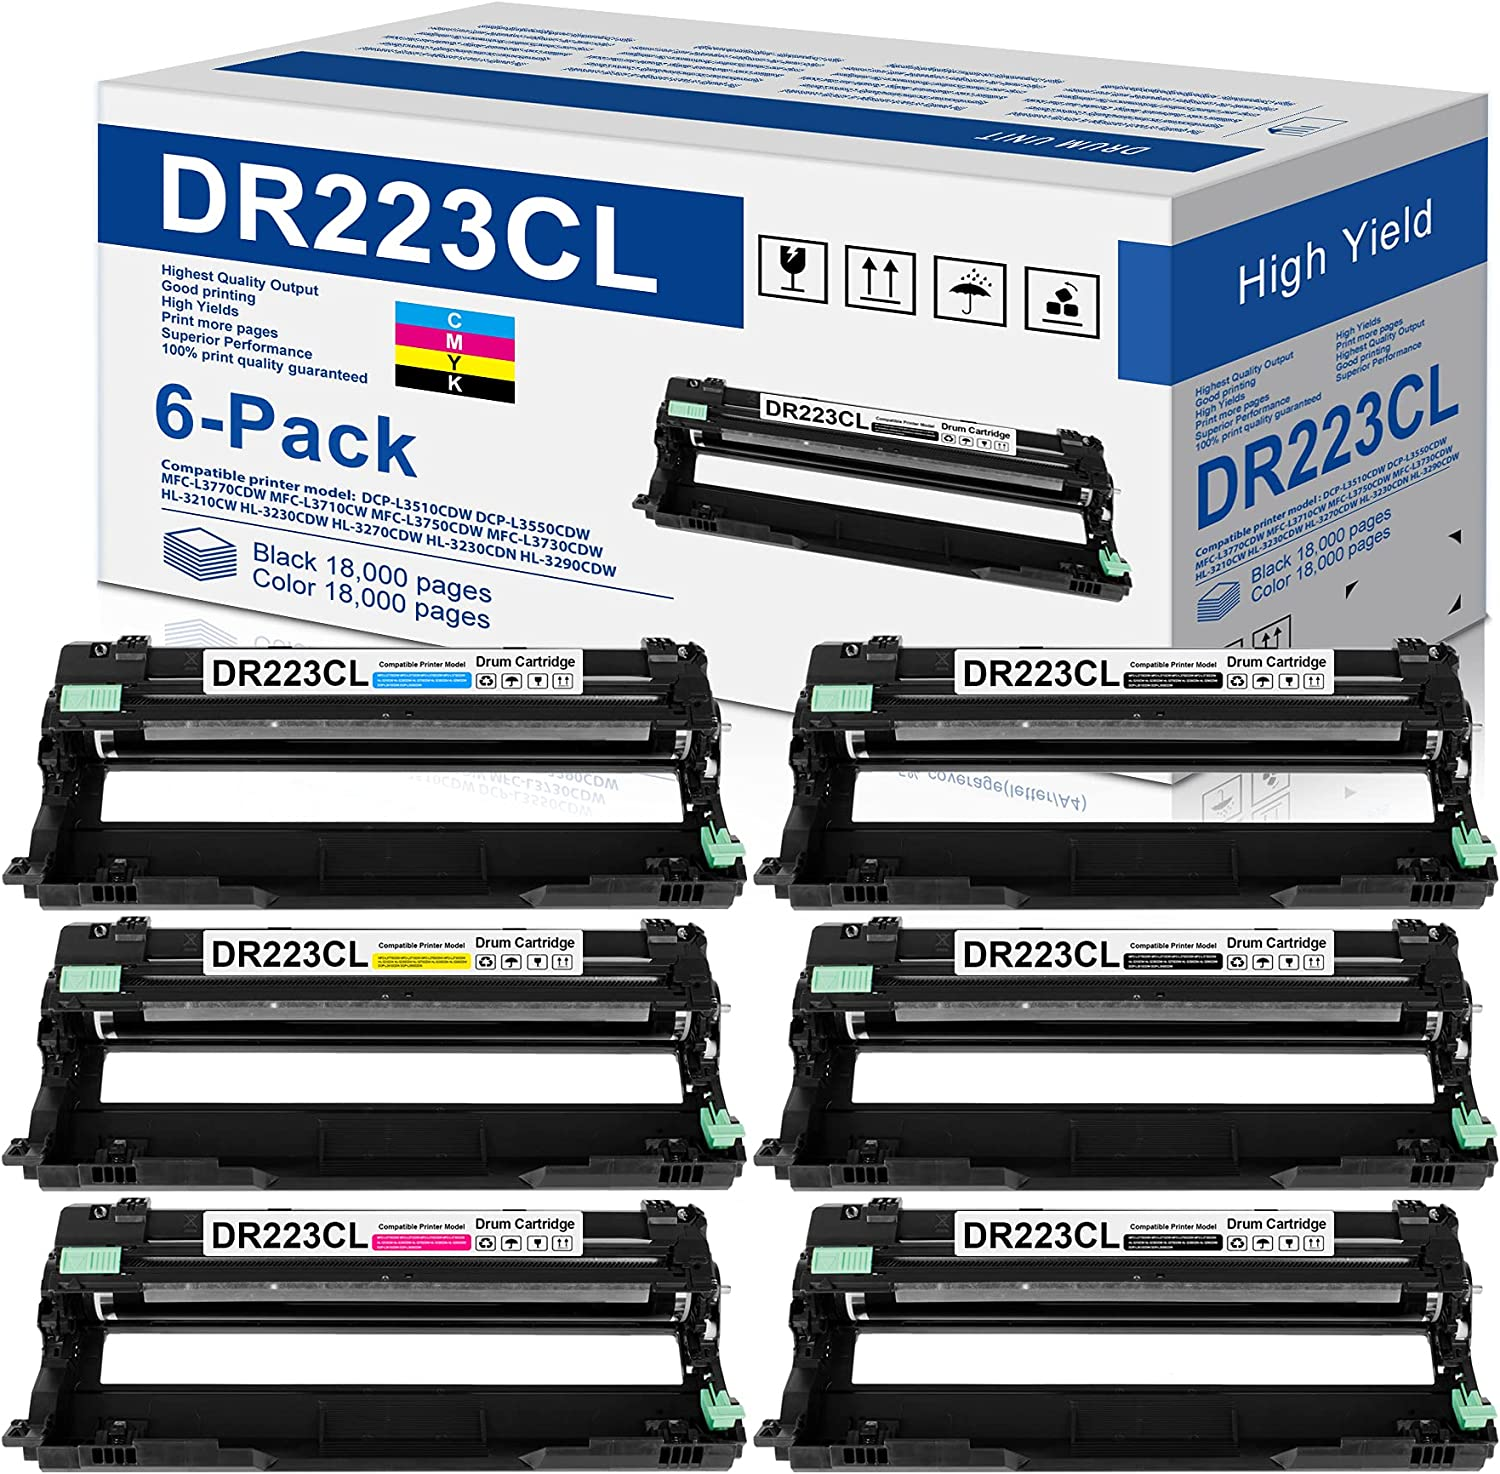 6-Pack(3BK+1C+1M+1Y) Compatible DR223CL Drum Unit Replacement for Brother DR-223CL DR223 Drum Works with Brother MFC-l3750CDW MFC-l3710CW HL-l3290CDW HL-l3270CDW HL-l3210CDW HL-L3230CDW Printer